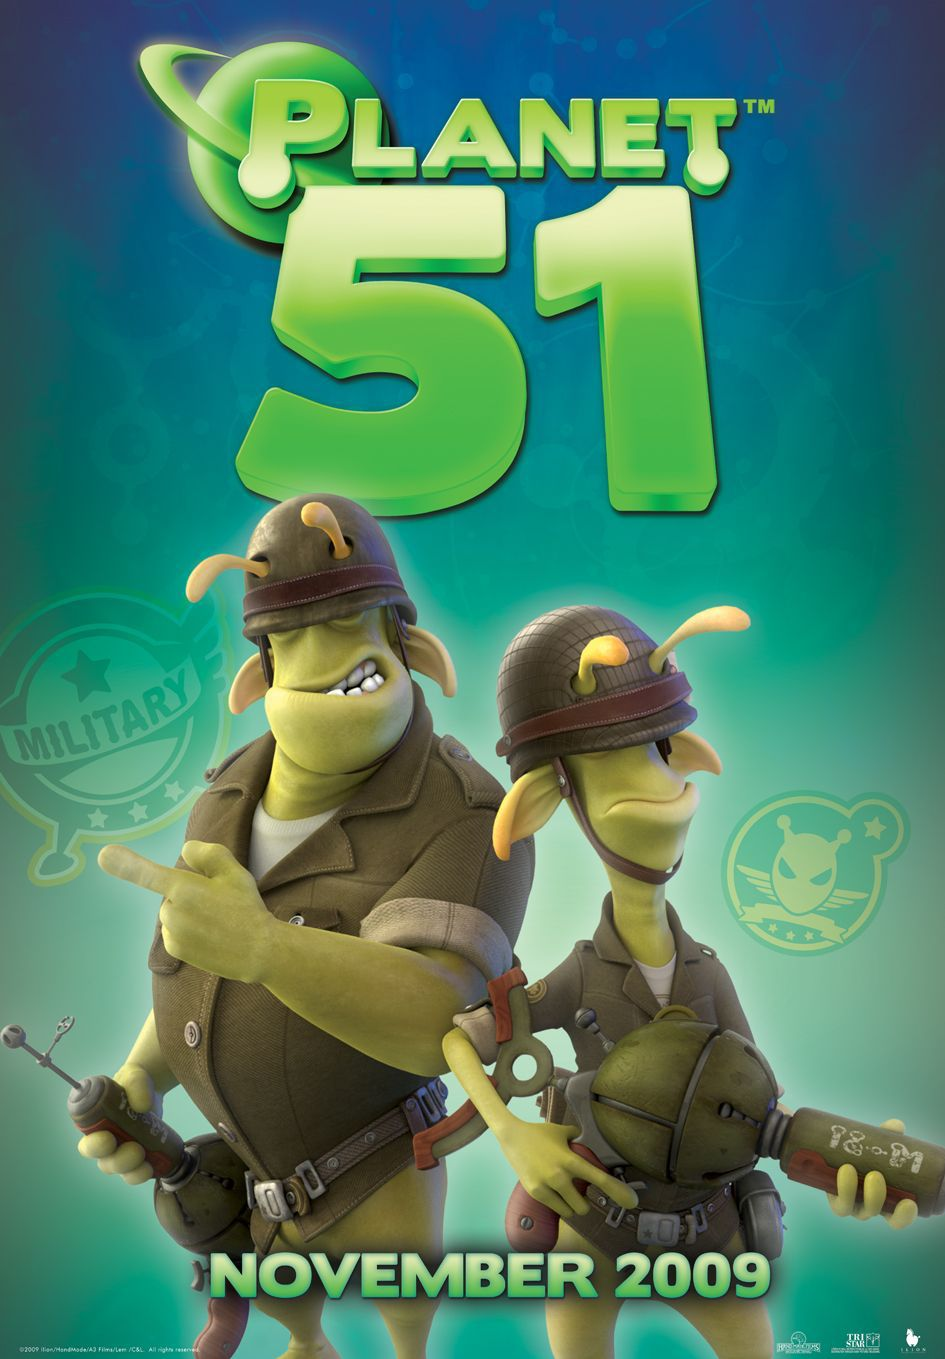 Planet 51 - alien army force